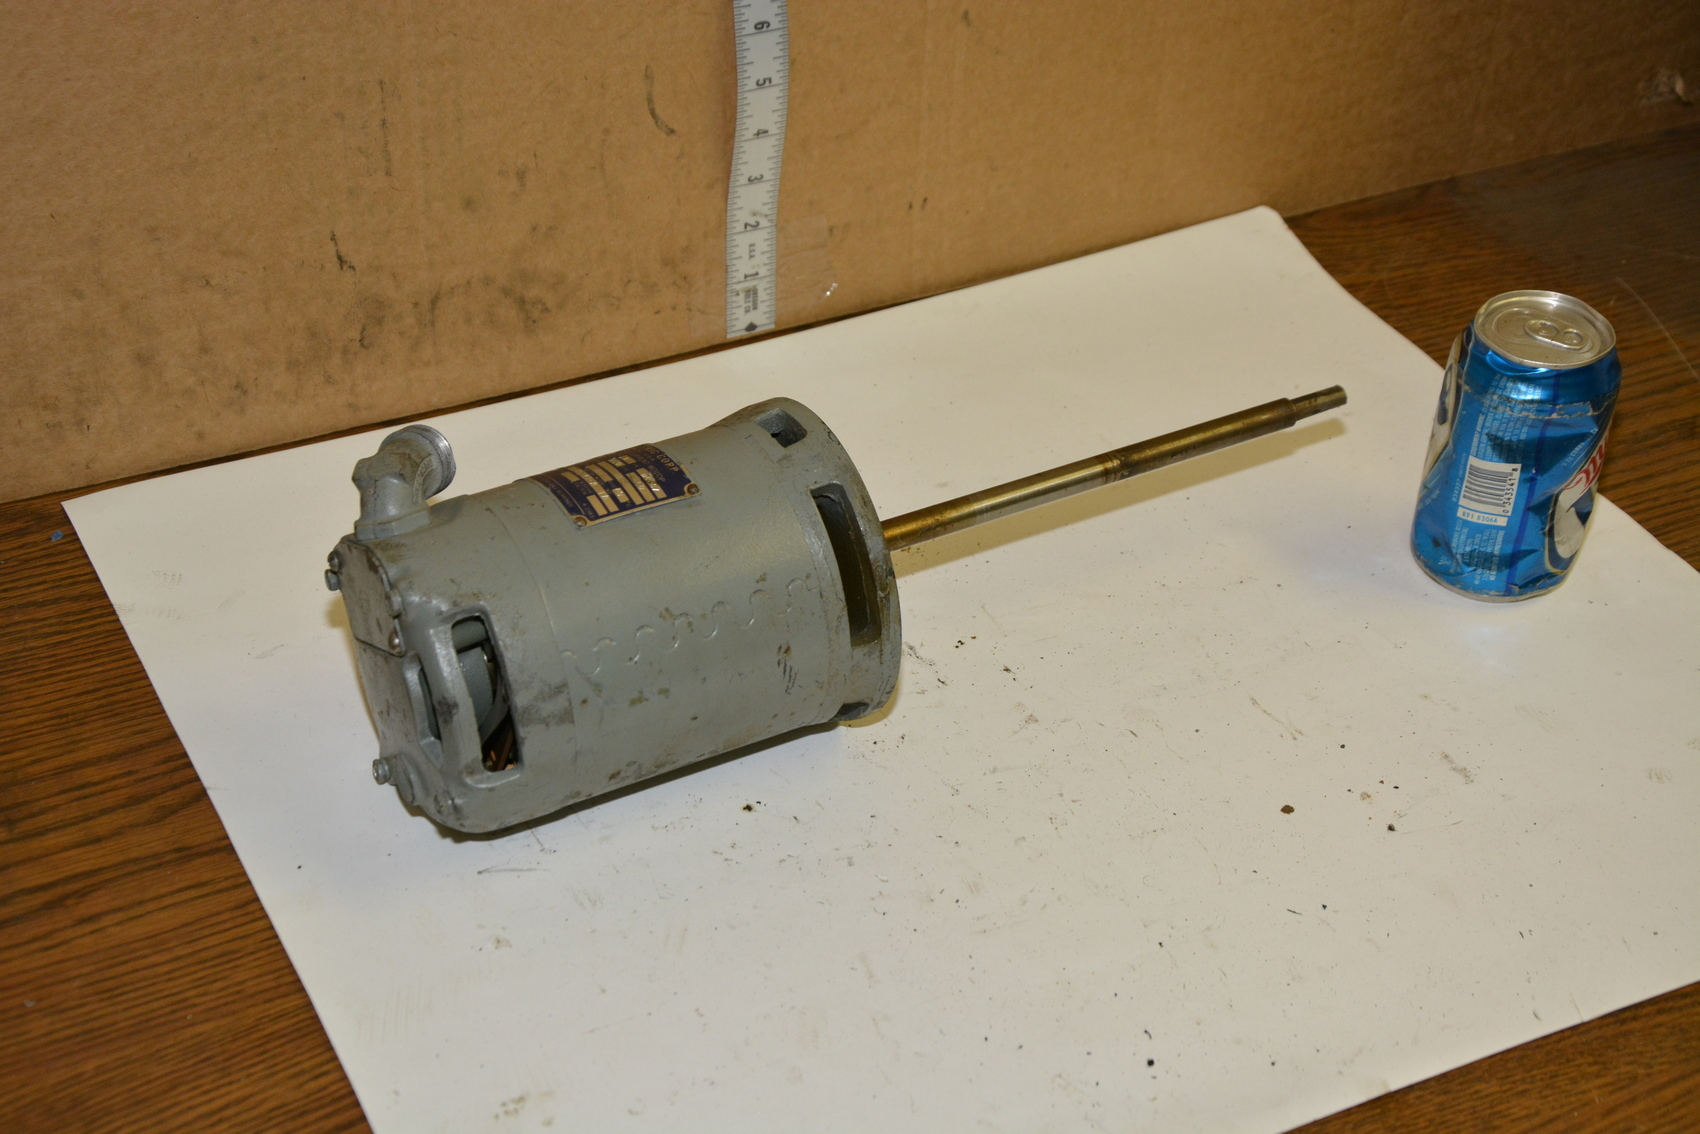 doerr electric single phase motor 1 20 hp for a mixer or